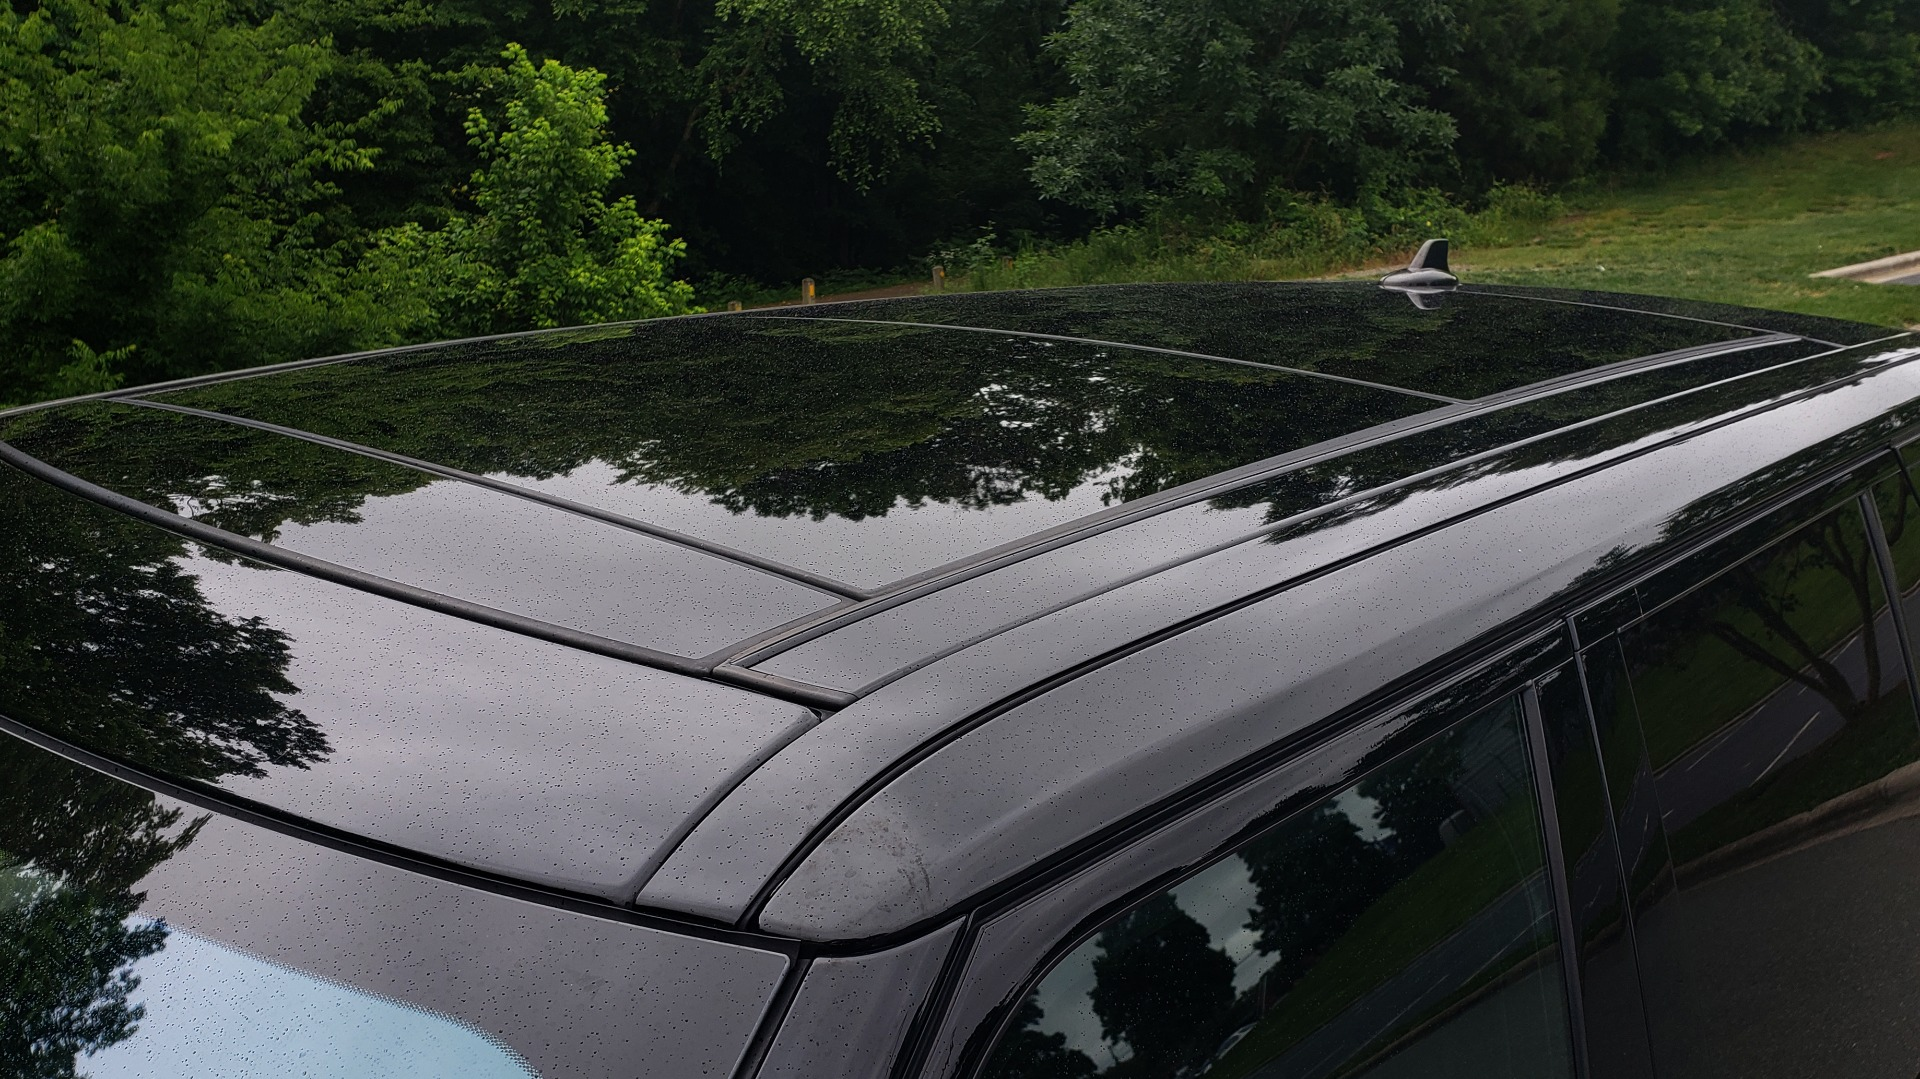 Used 2016 Land Rover Range Rover HSE 3.0L SC V6 / NAV / PANO-ROOF / VENT SEATS / REARVIEW / BLIND SPOT for sale Sold at Formula Imports in Charlotte NC 28227 12